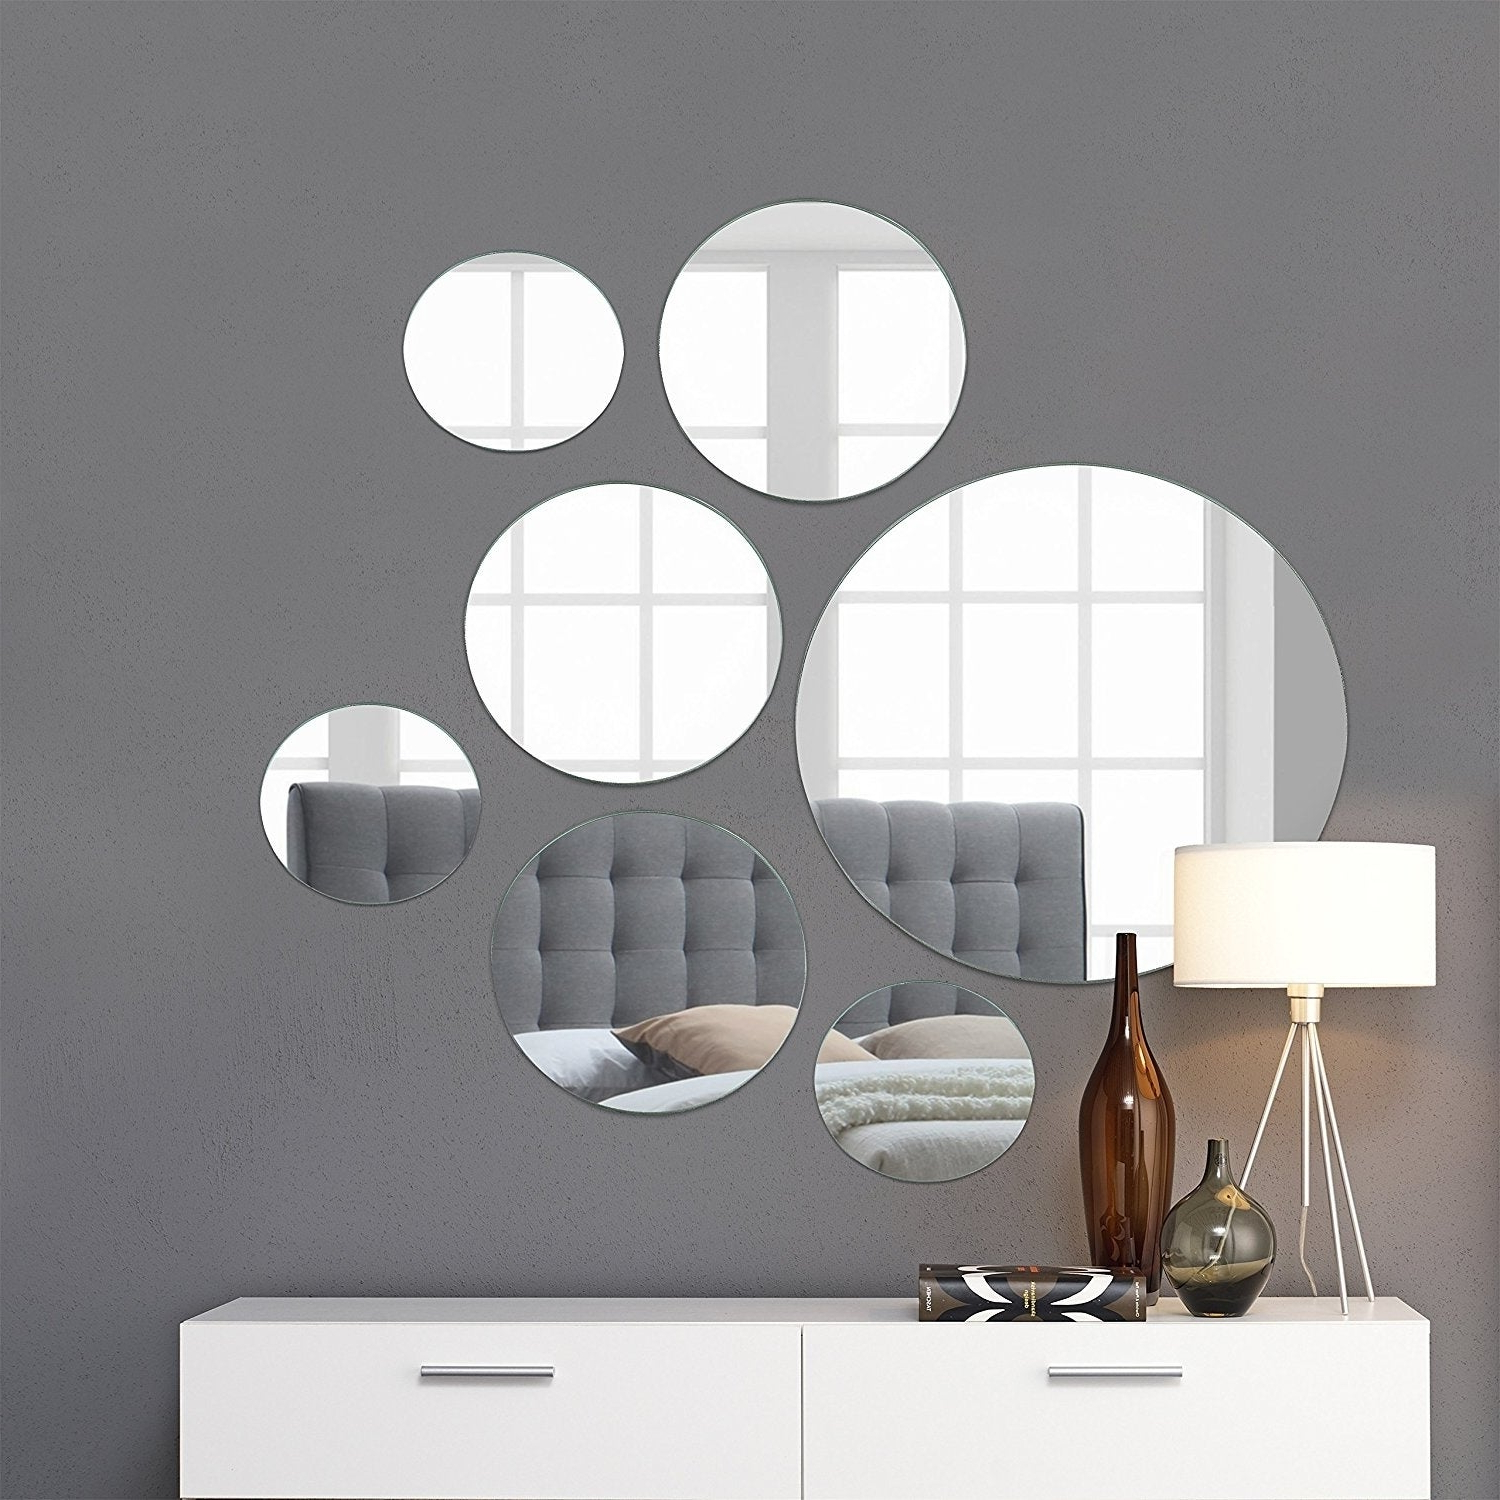 "Small Round Wall Mirrors With Regard To Best And Newest Round Wall Mirror Mounted Assorted Sizes – Silver – 1 Large 10"" , 3 Medium  7"" , 3 Small 4"" ,set Of 7 (Gallery 5 of 20)"